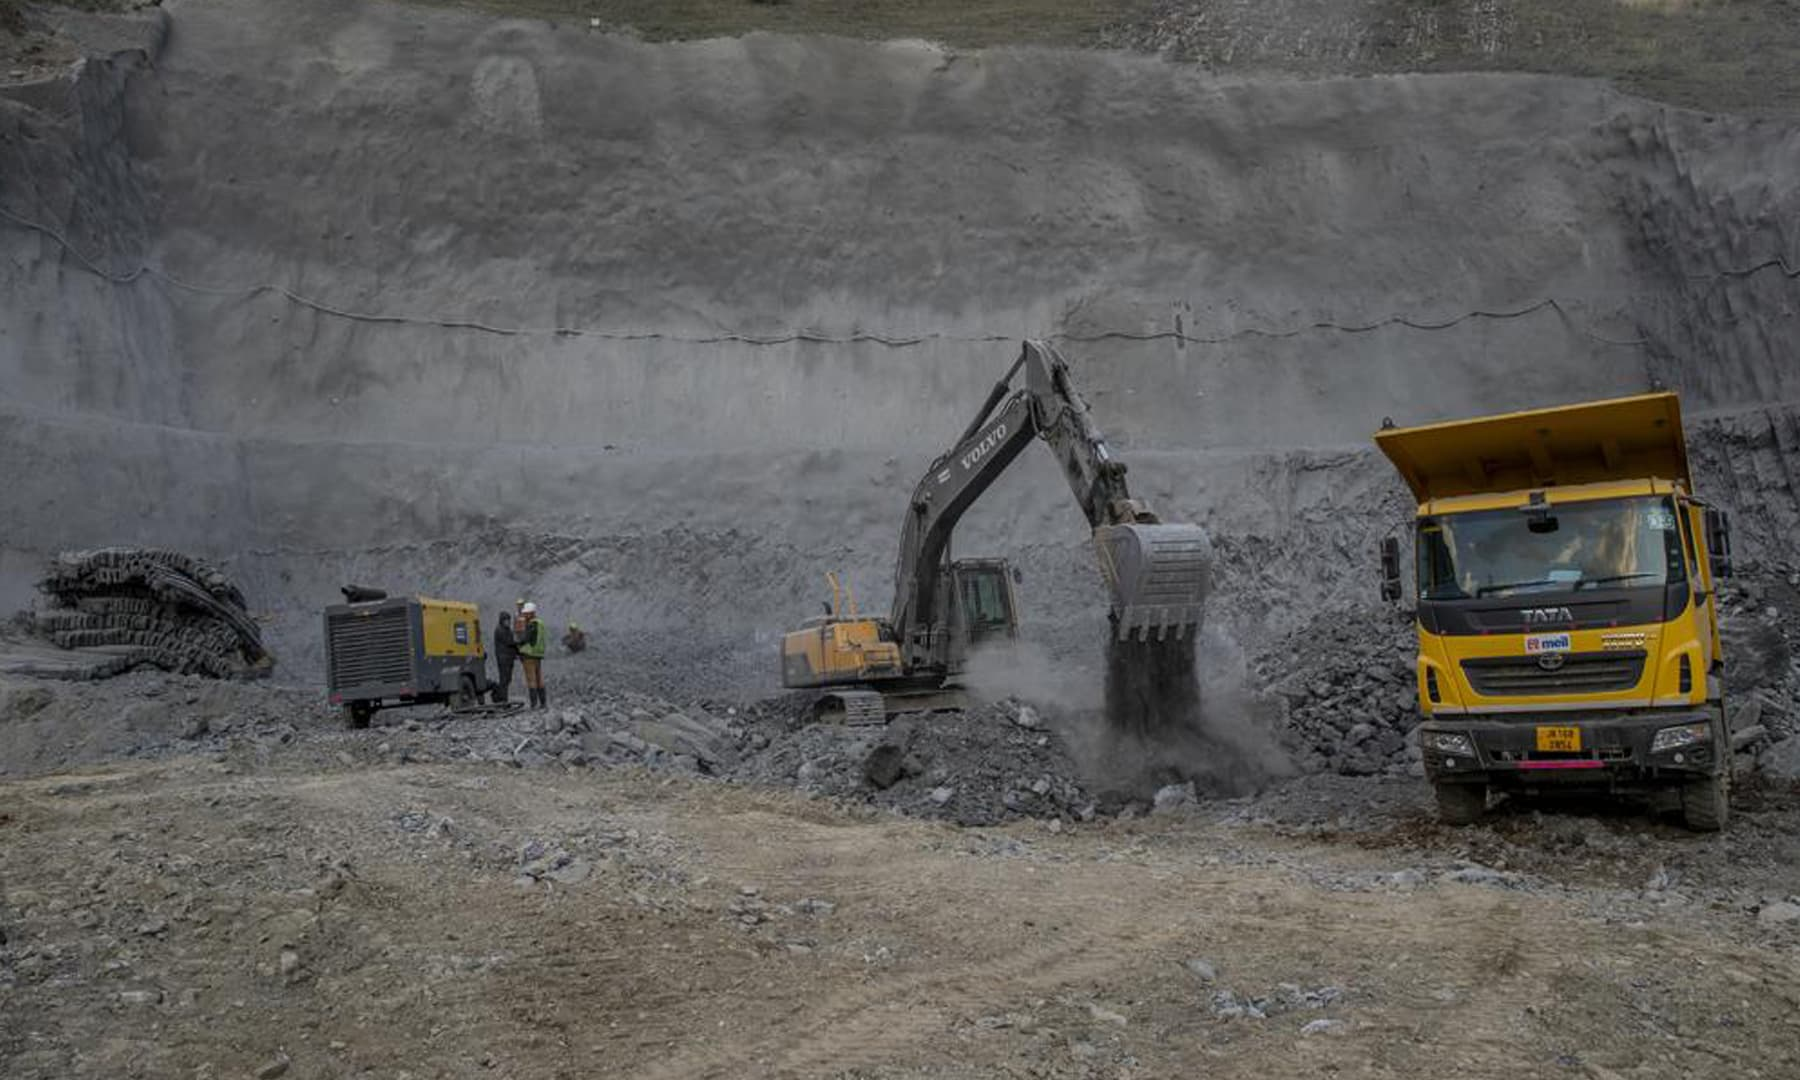 Land movers work to clear rocks and boulders as they work at the entrance of Nilgrar Tunnel in Baltal area northeast of Srinagar in Indian-occupied Kashmir.— AP